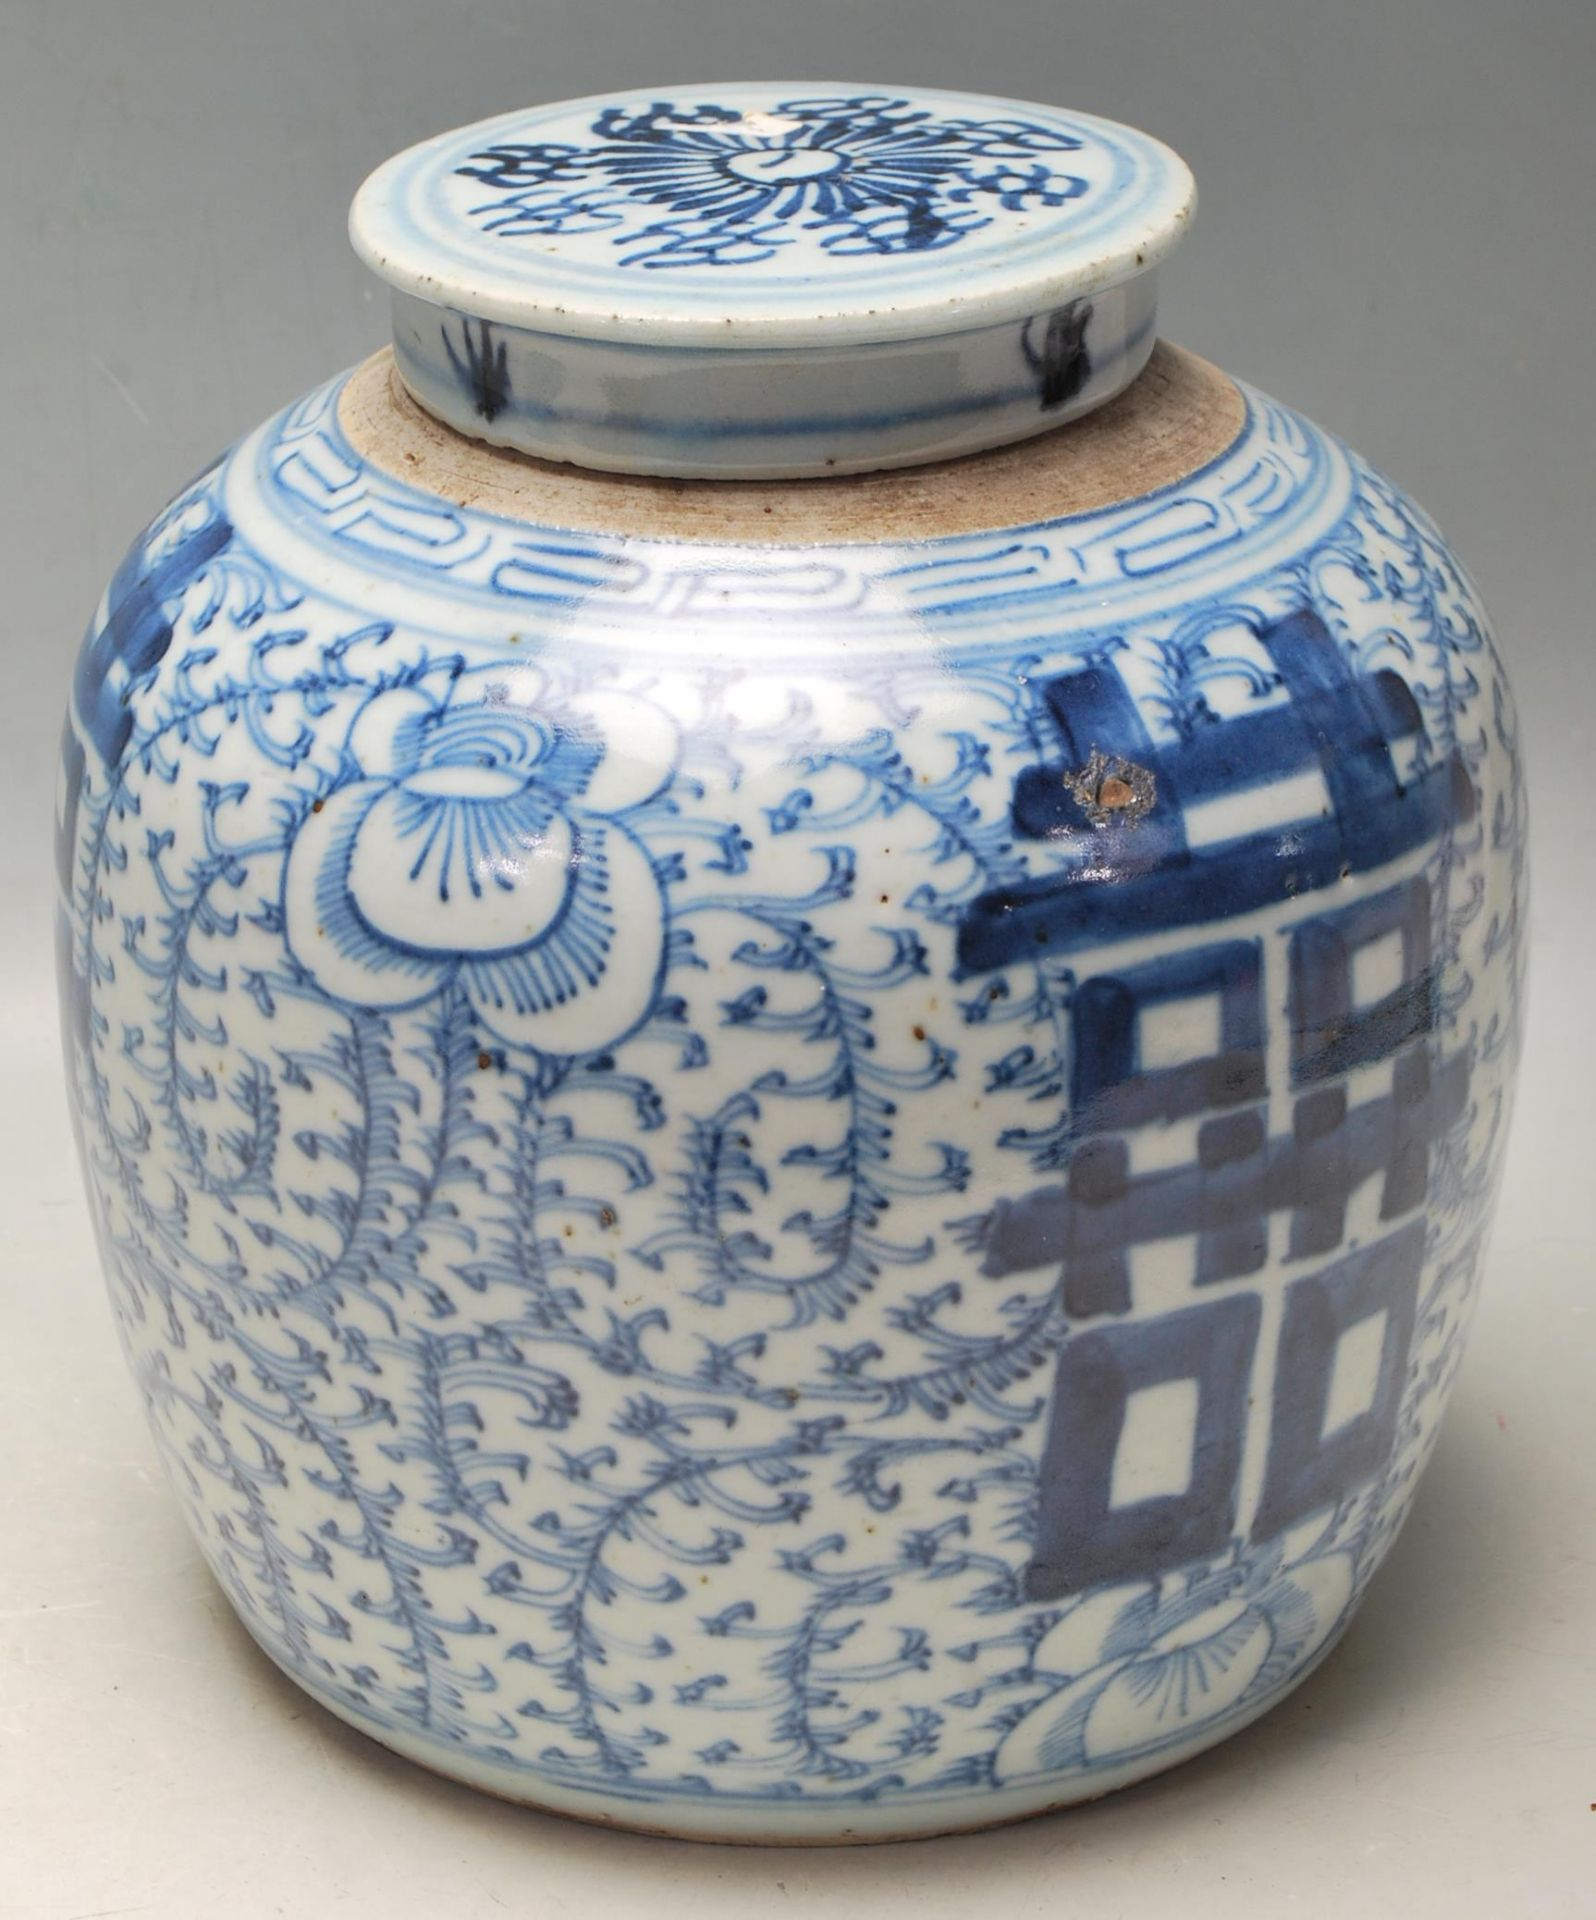 LATE 19TH CENTURY KANGXI CHINESE BLUE AND WHITE VASE - Image 6 of 9